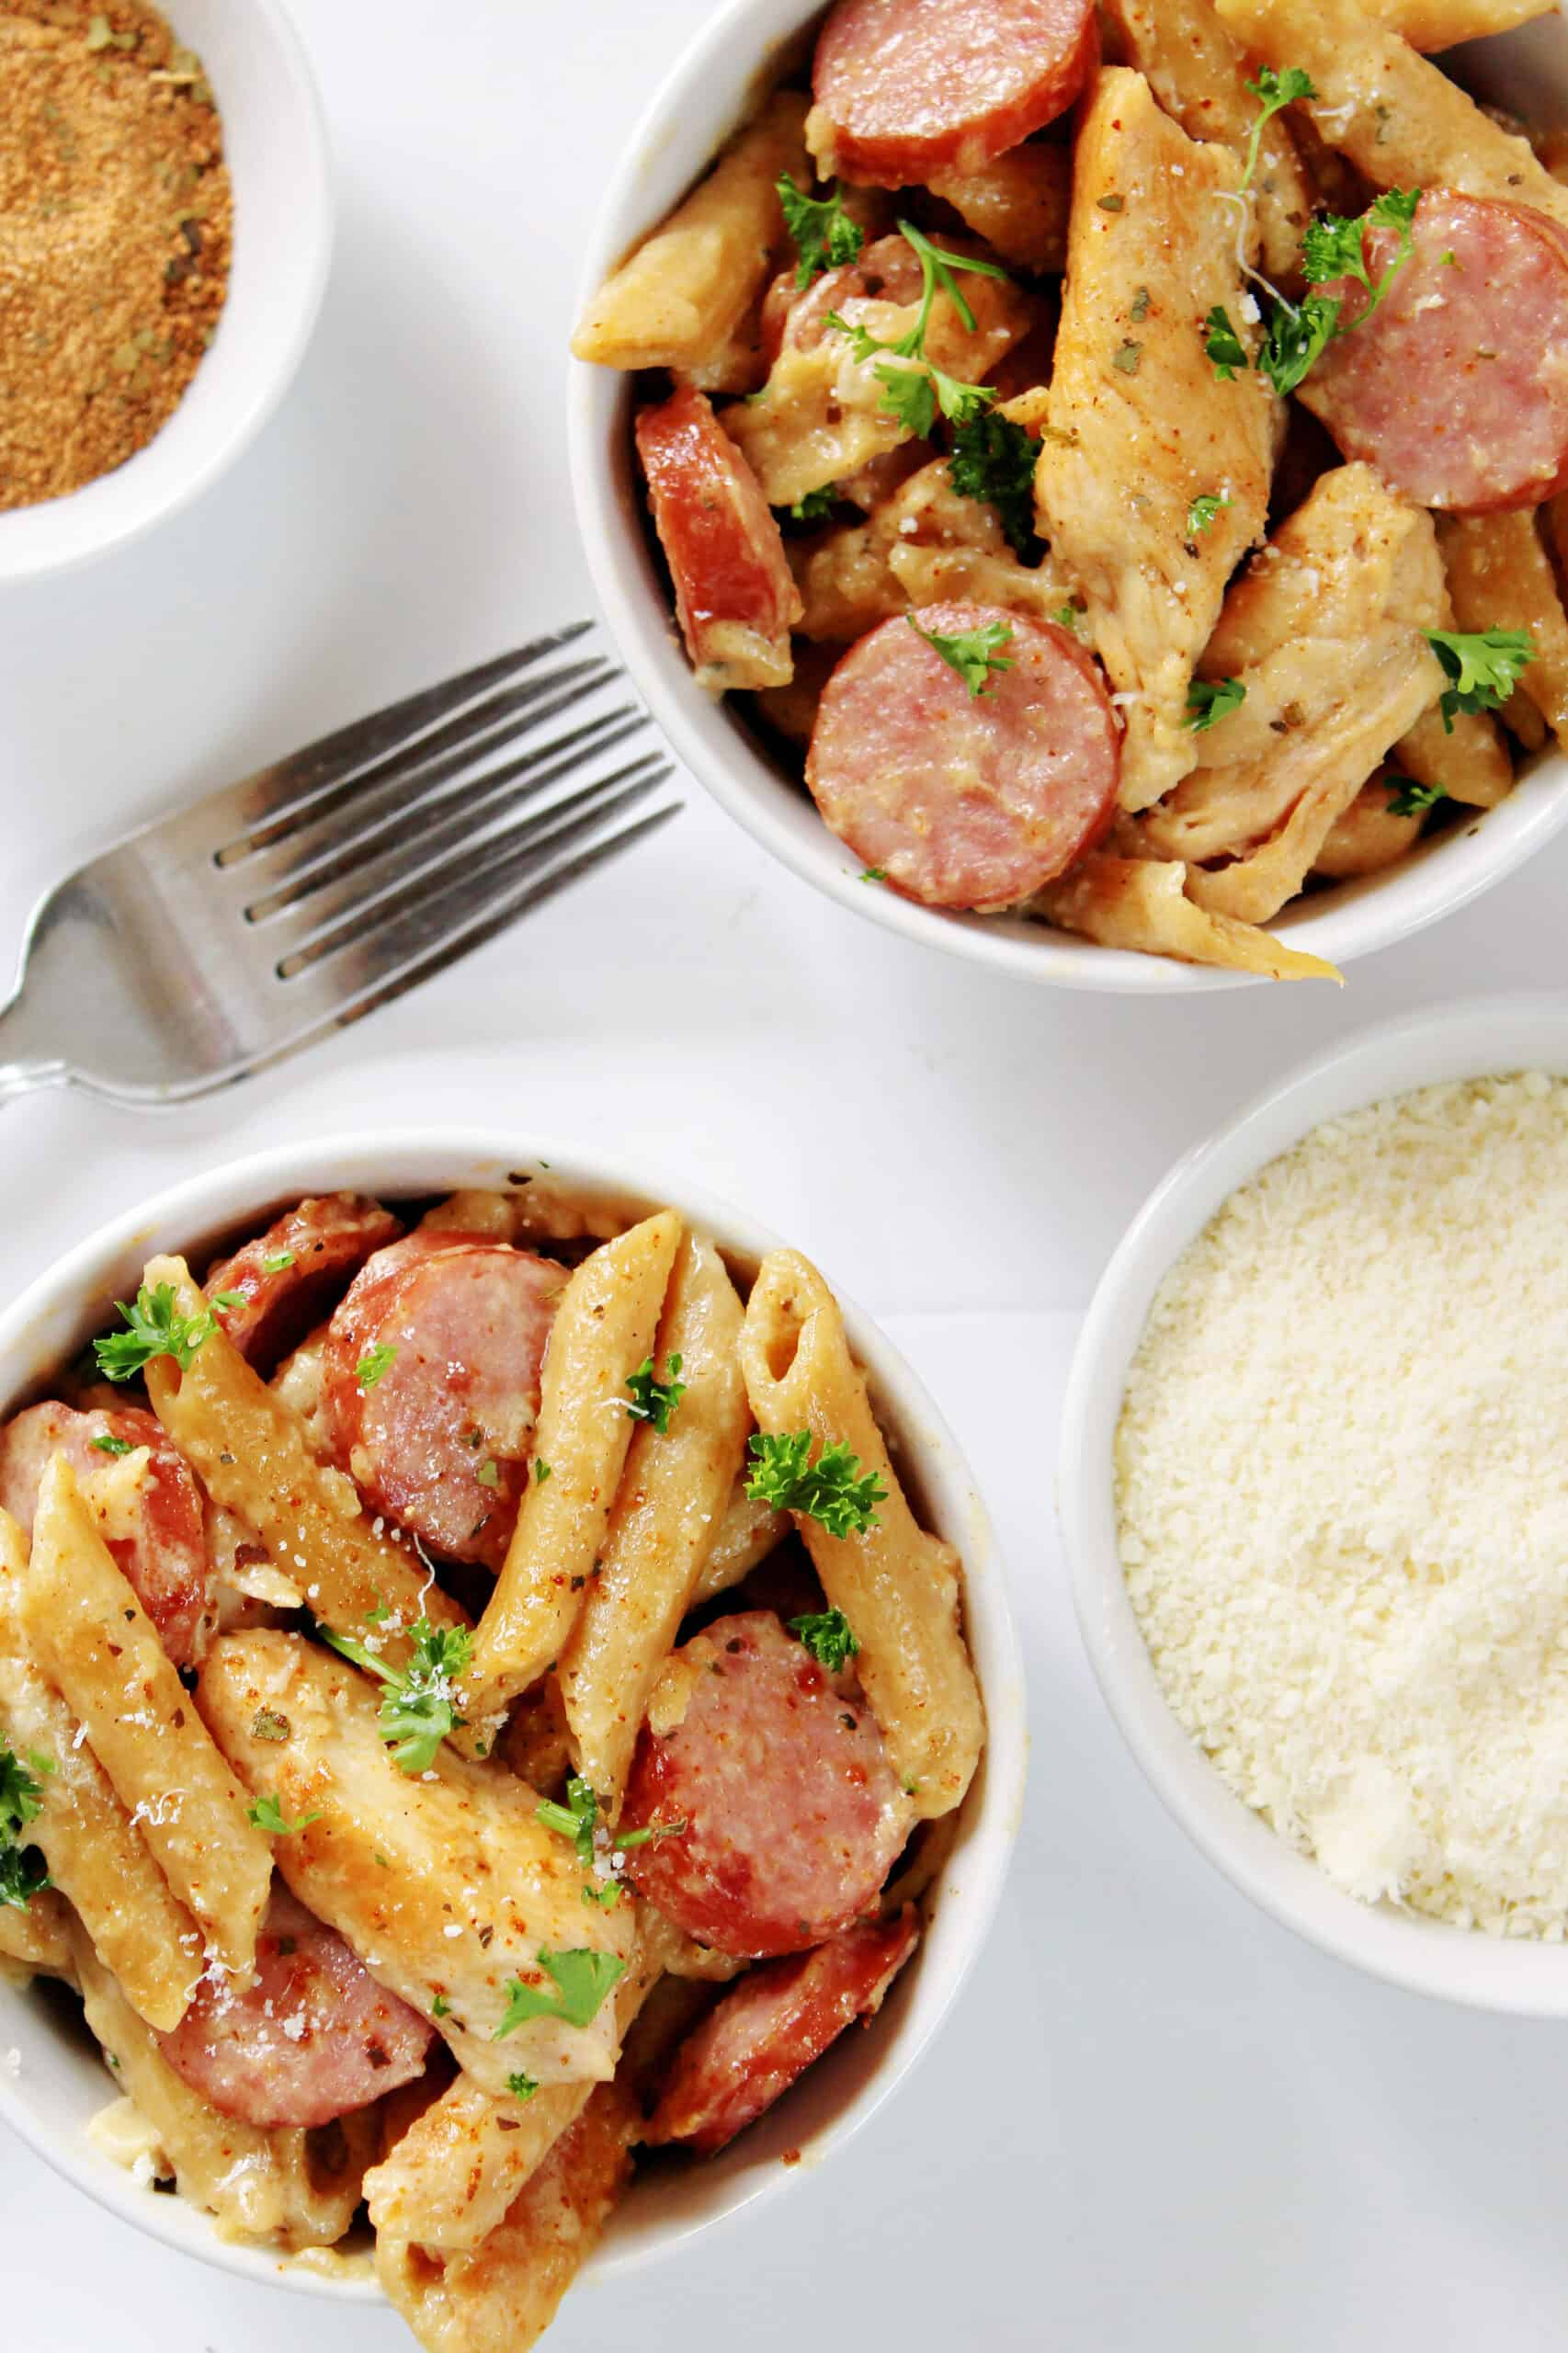 cajun chicken alfredo pasta with sausage in two white bowls with forks